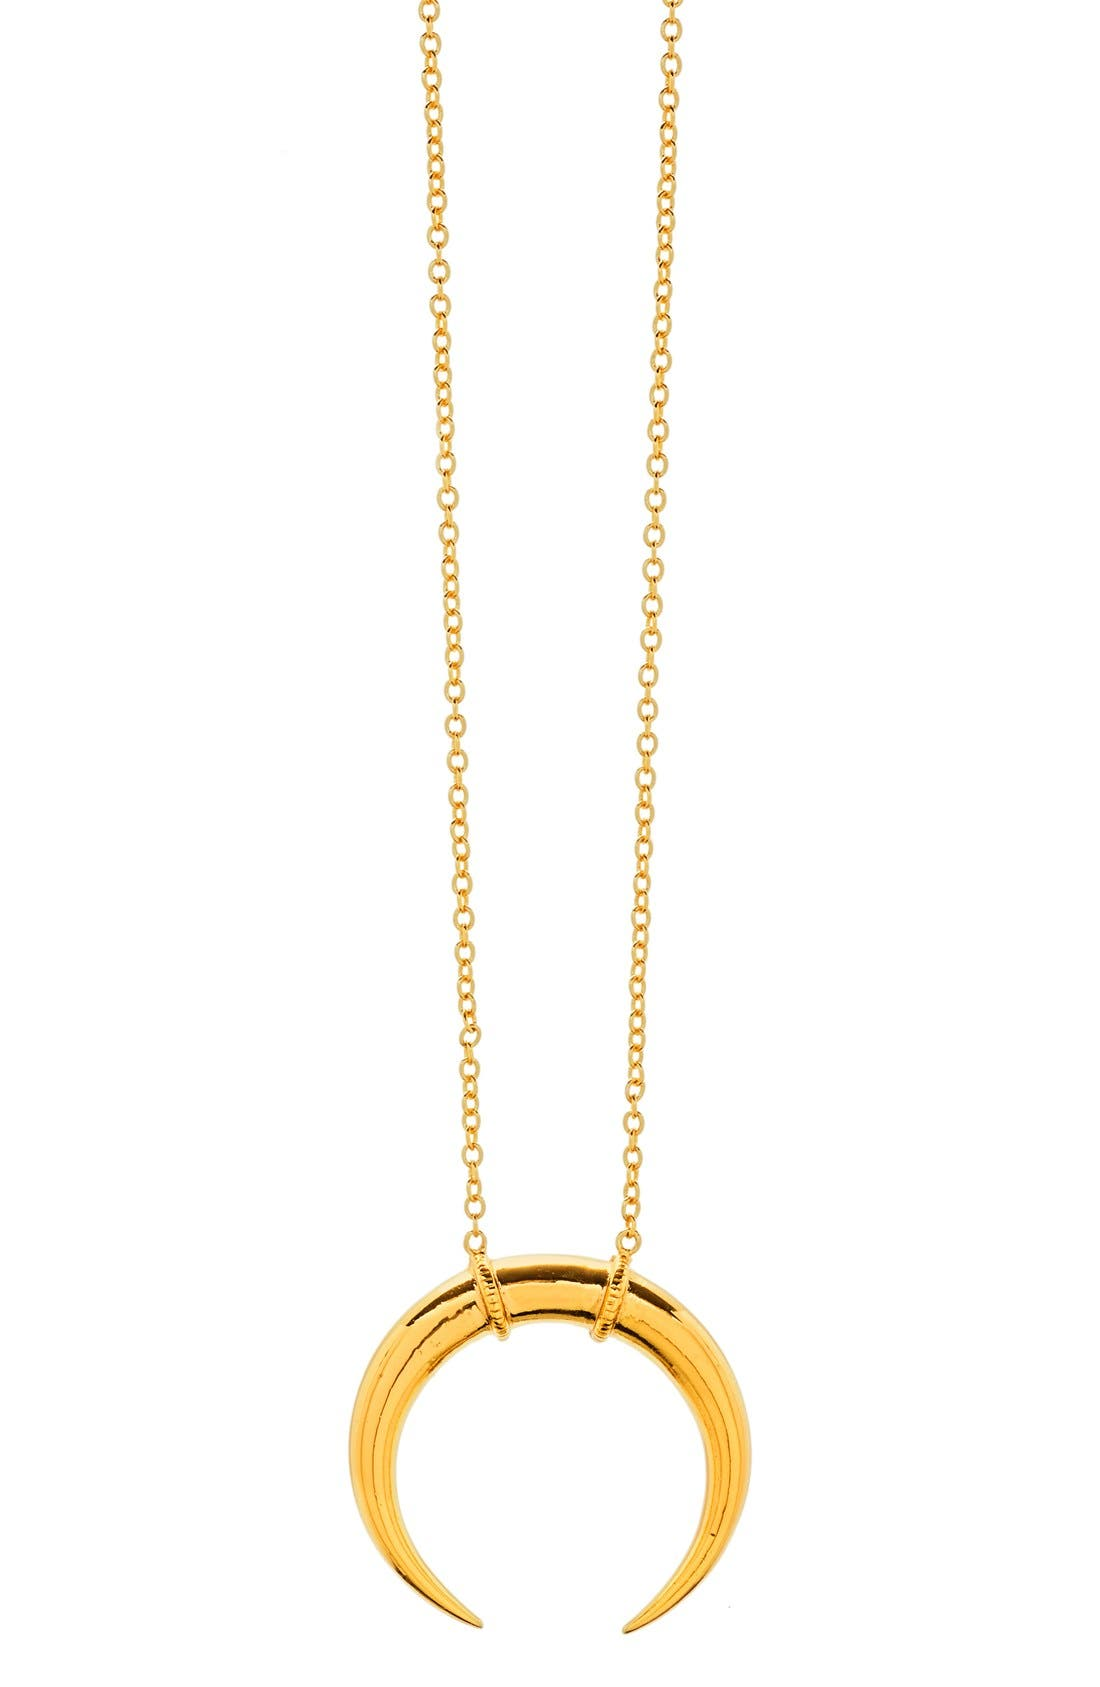 gorjana 'Cayne' Crescent Pendant Necklace